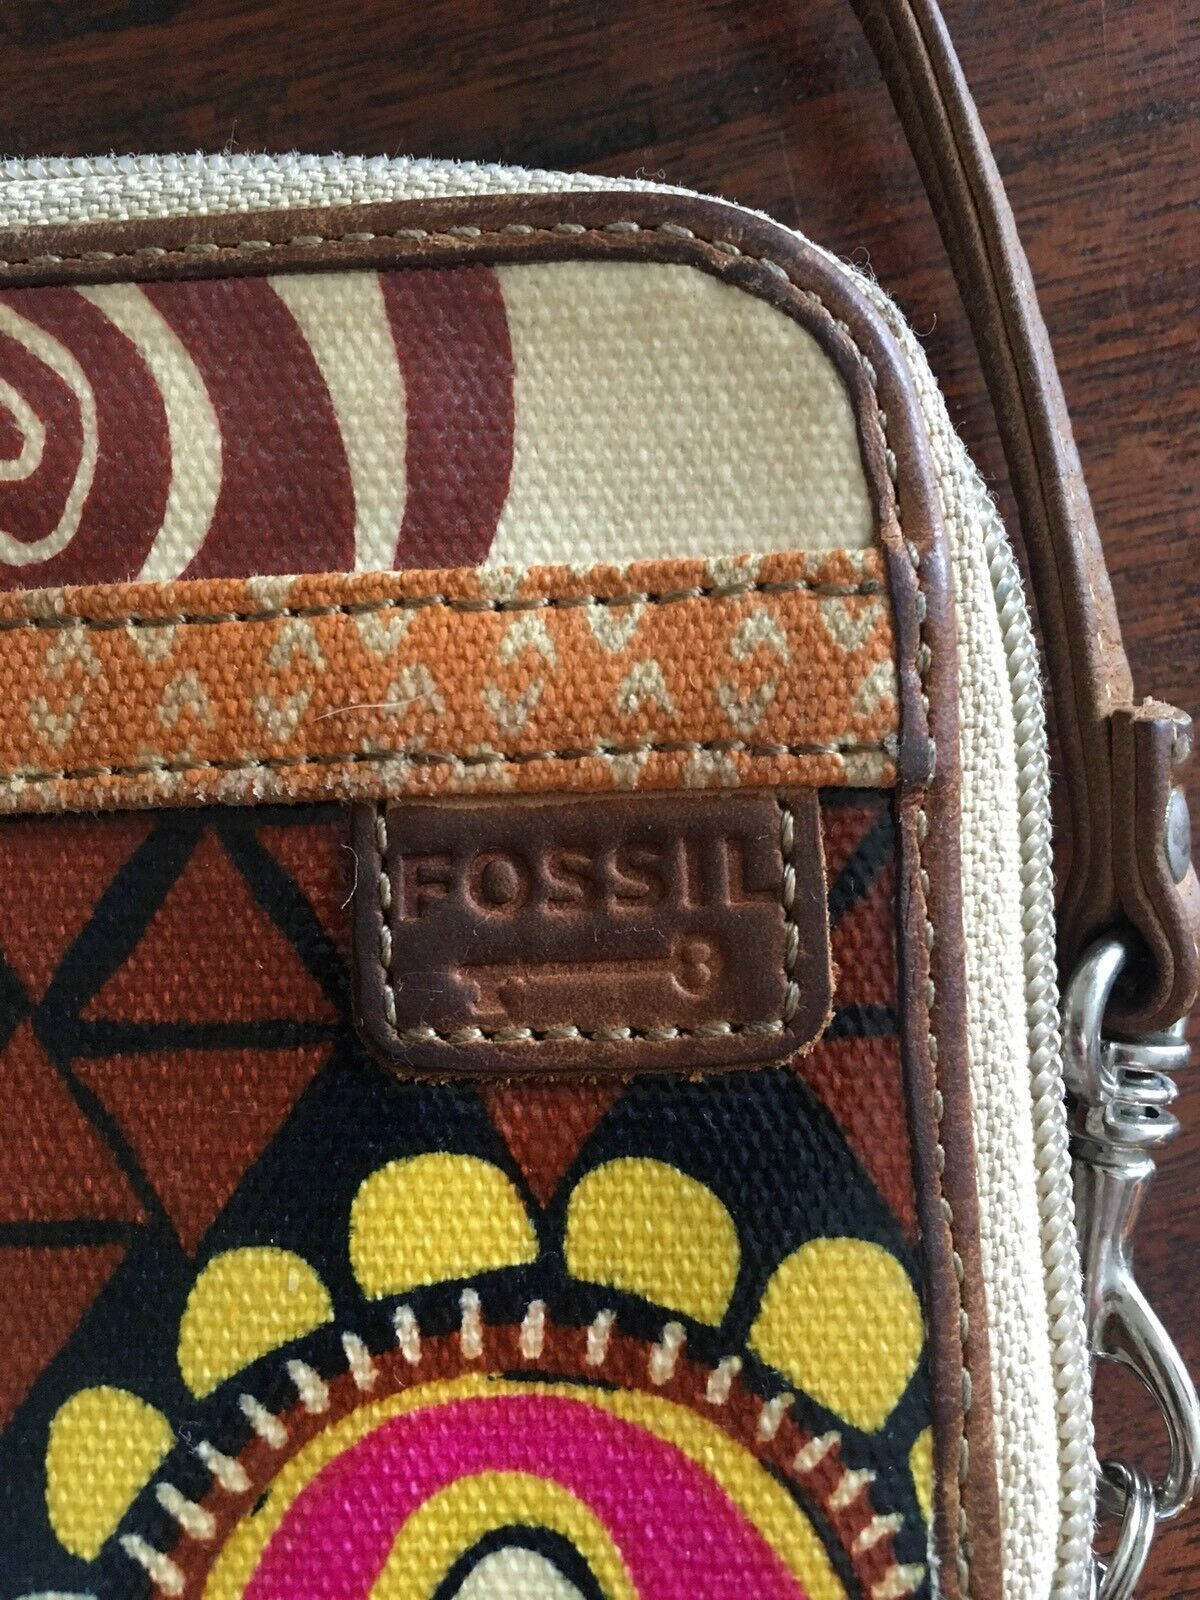 FOSSIL Key-Per Brown Floral Pattern Zip Around Coated Canvas Wallet 6x4 image 4